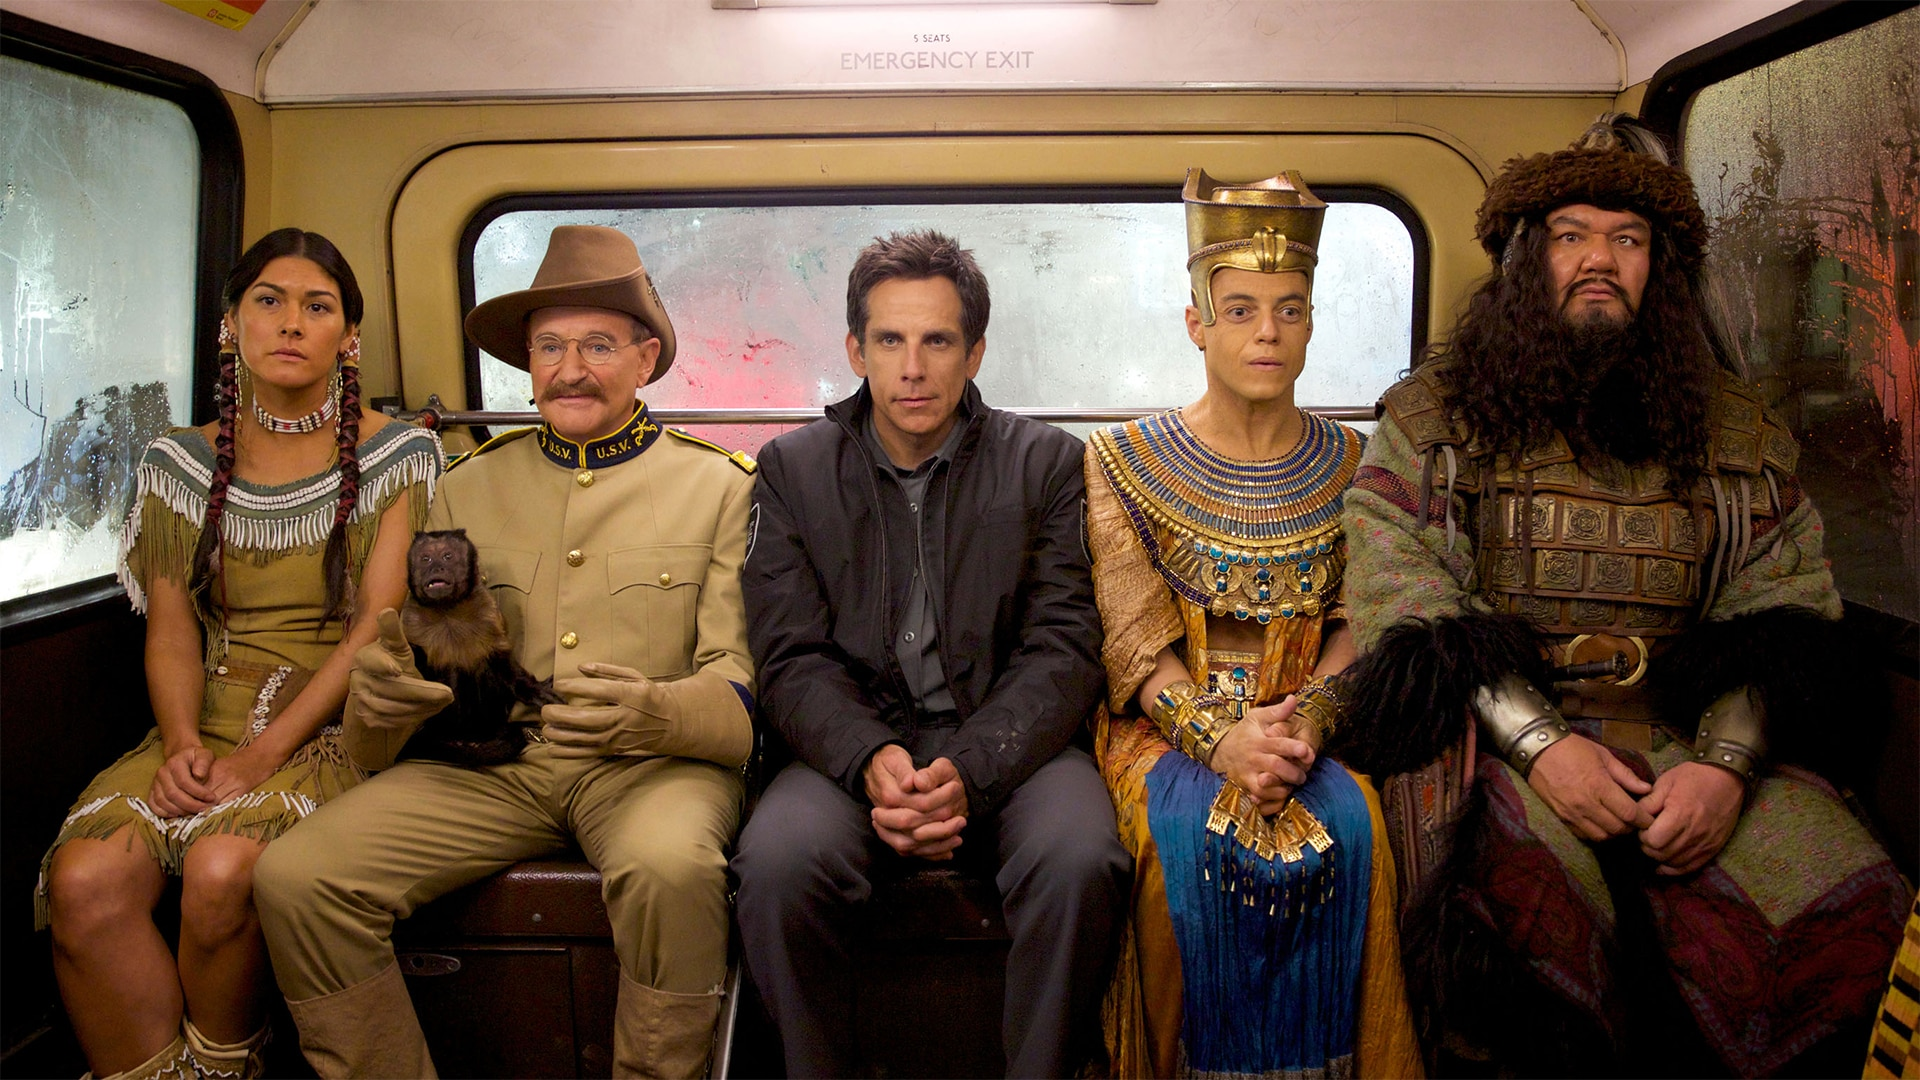 Night At The Museum: Secret Of The Tomb on Film4